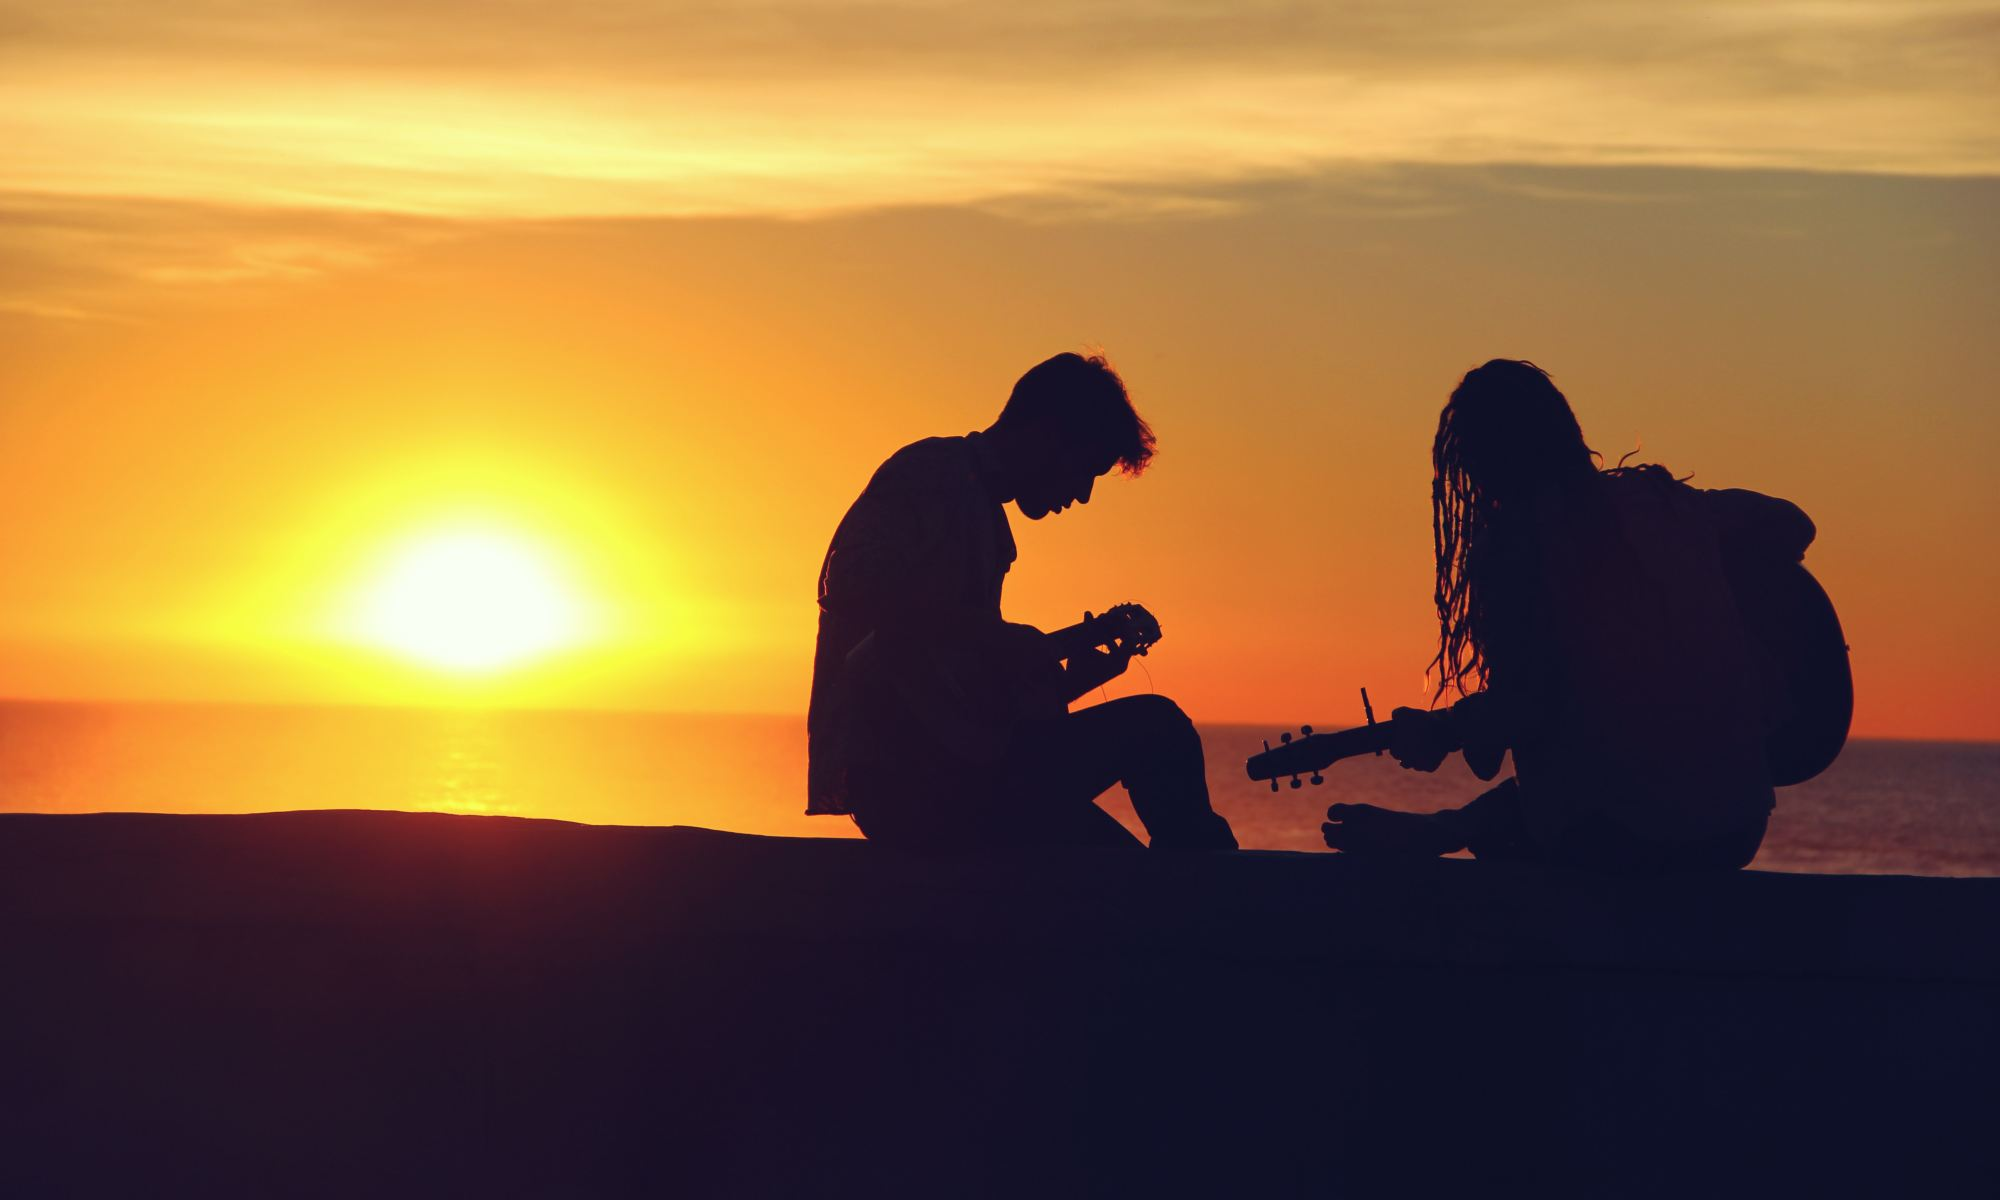 Silhouette of man and woman playing guitars and enjoying music